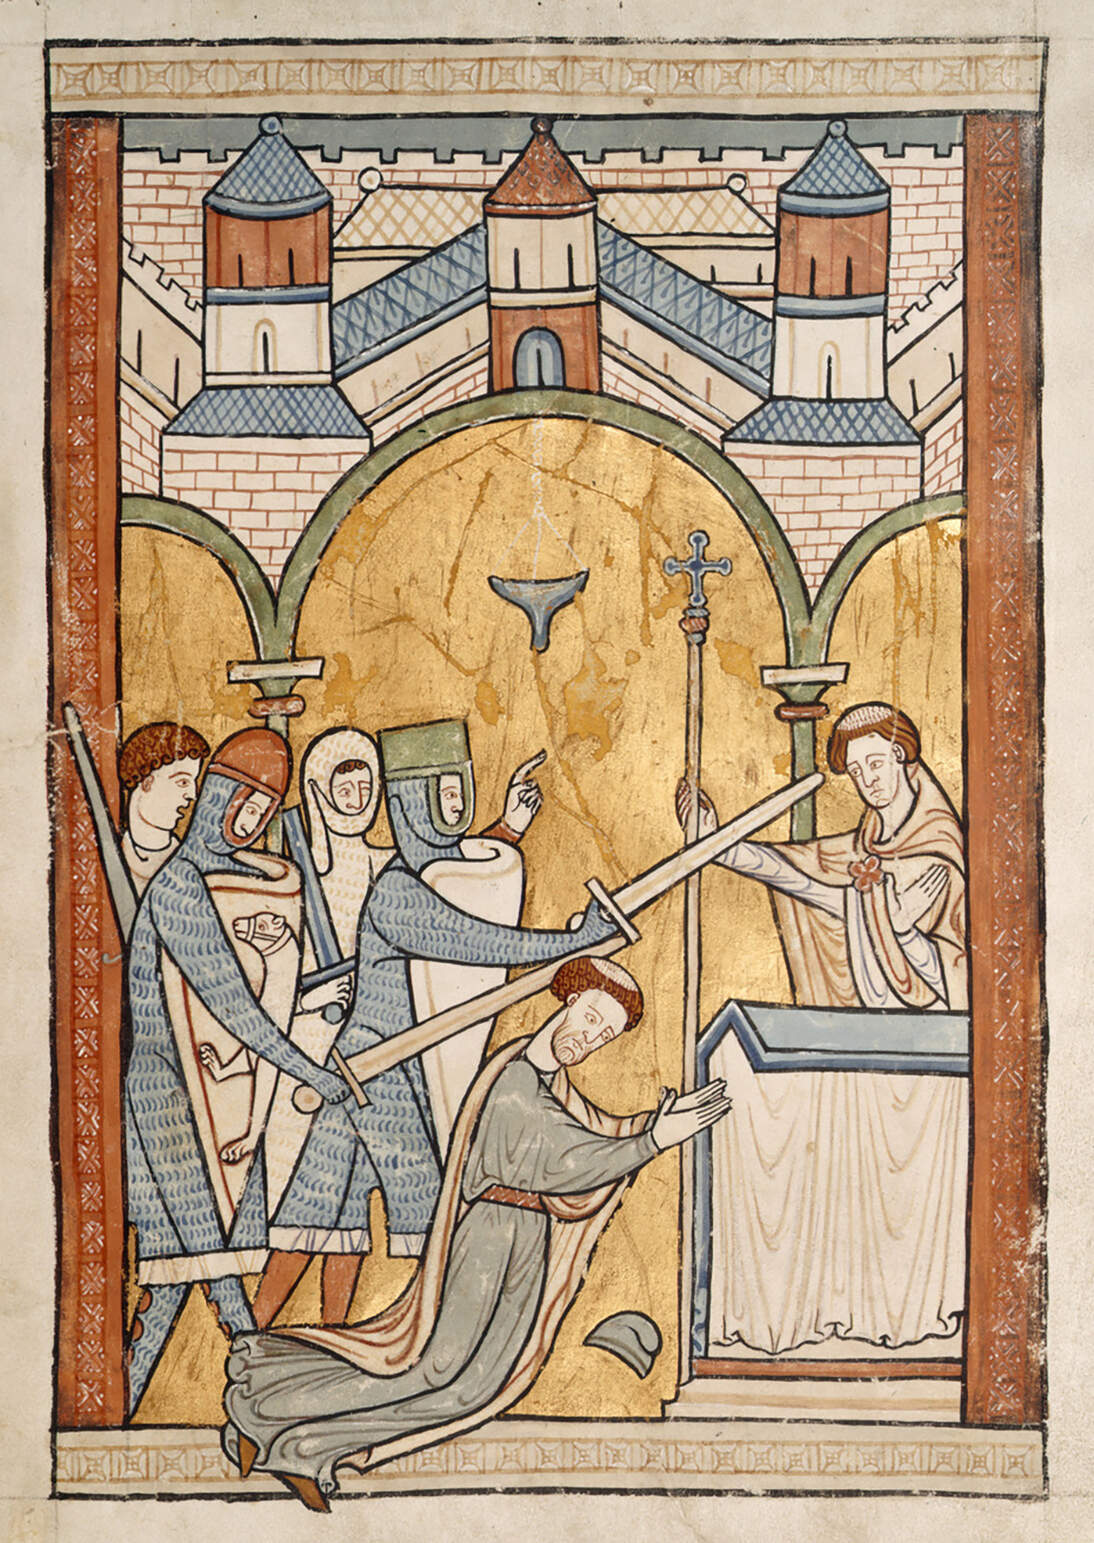 A 13th-century manuscript illumination, the earliest known depiction of Thomas Becket's assassination in Canterbury Cathedral, circa 1200.